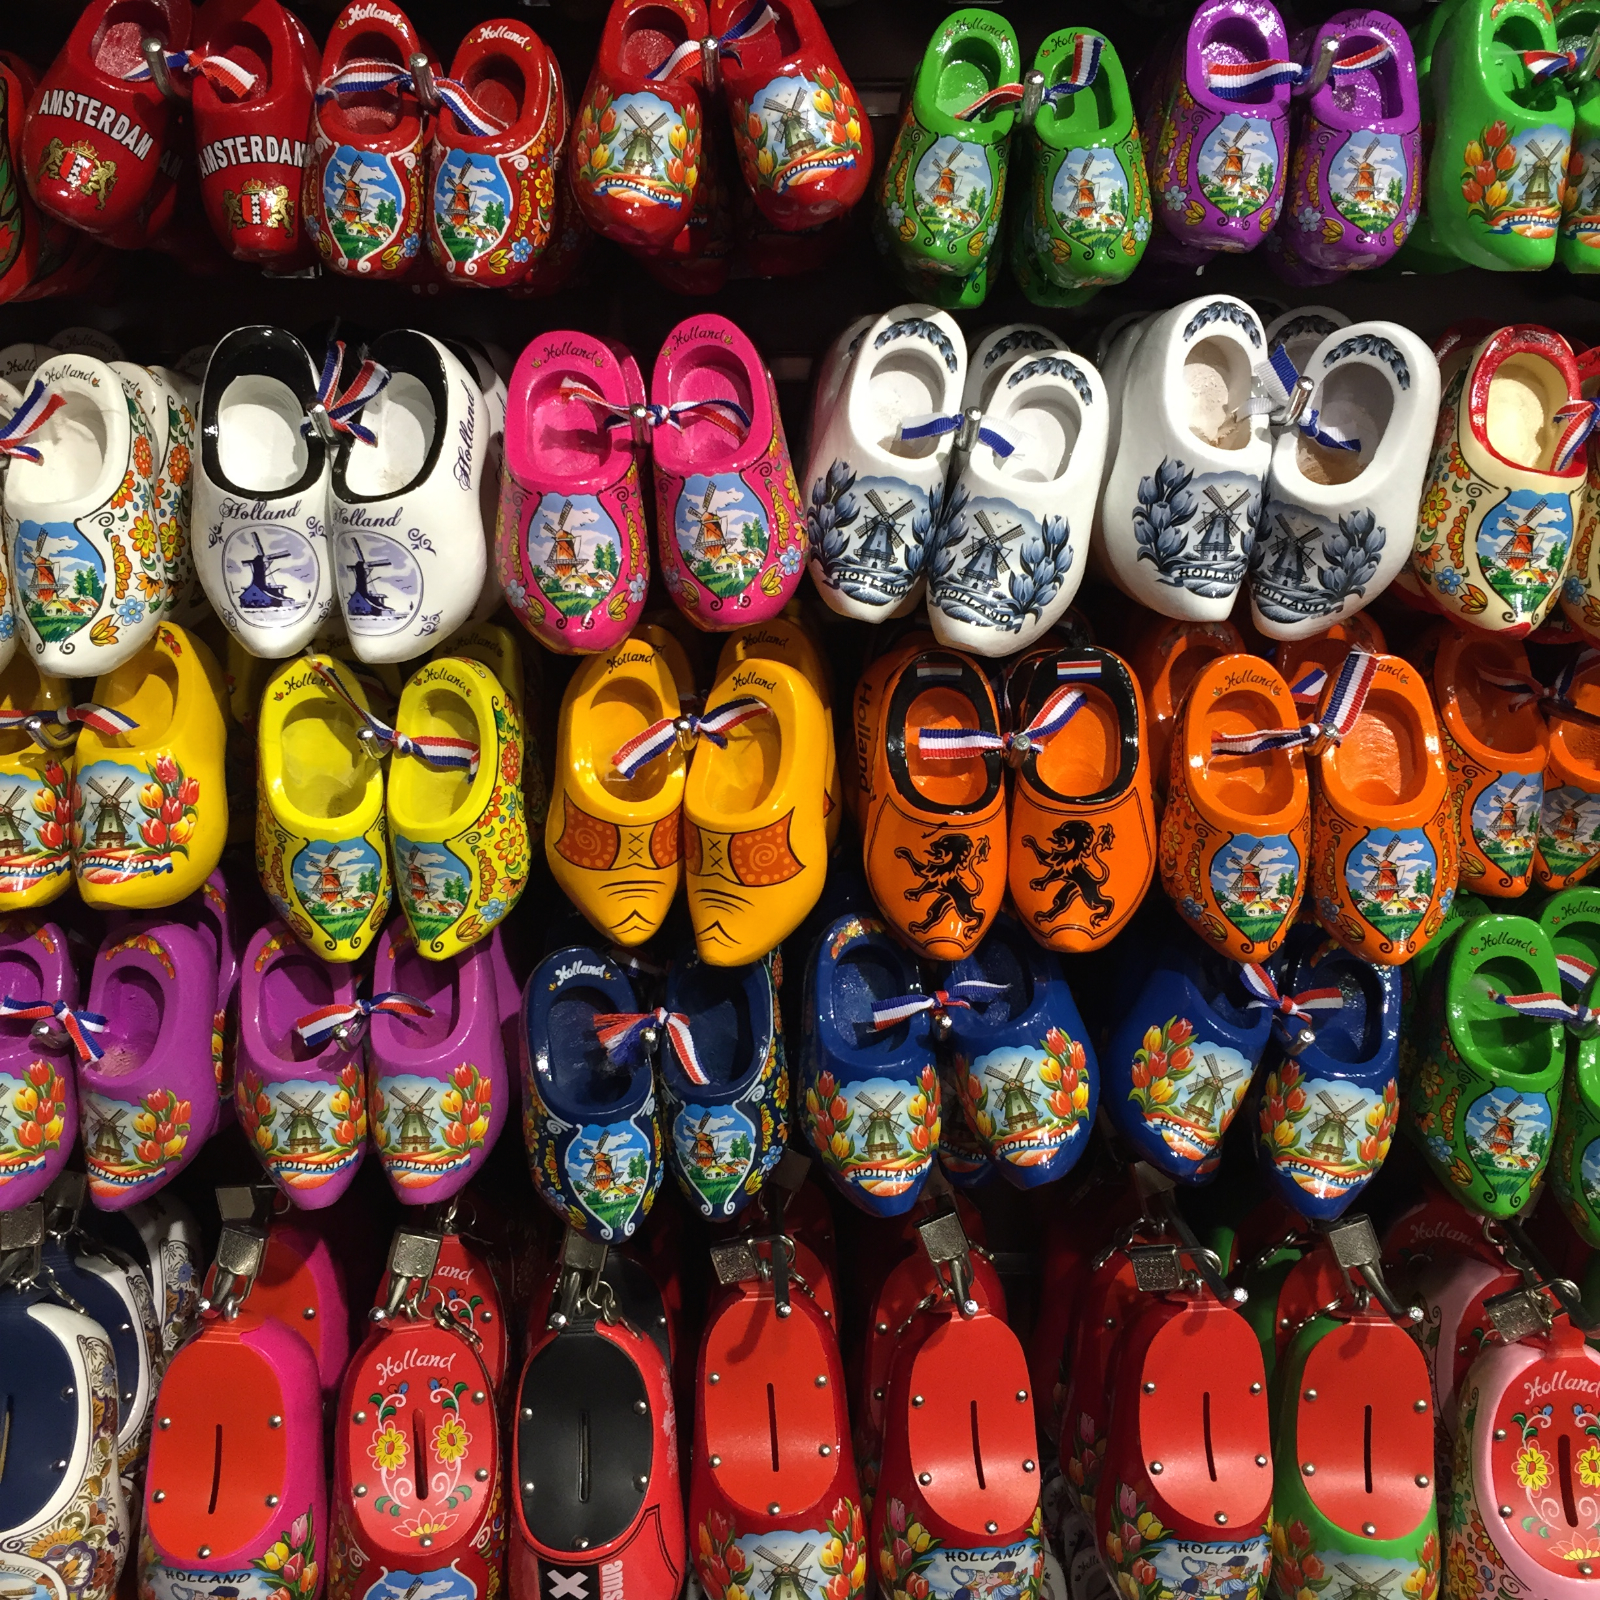 Ah, tourism... where do all these funny shoes end up?